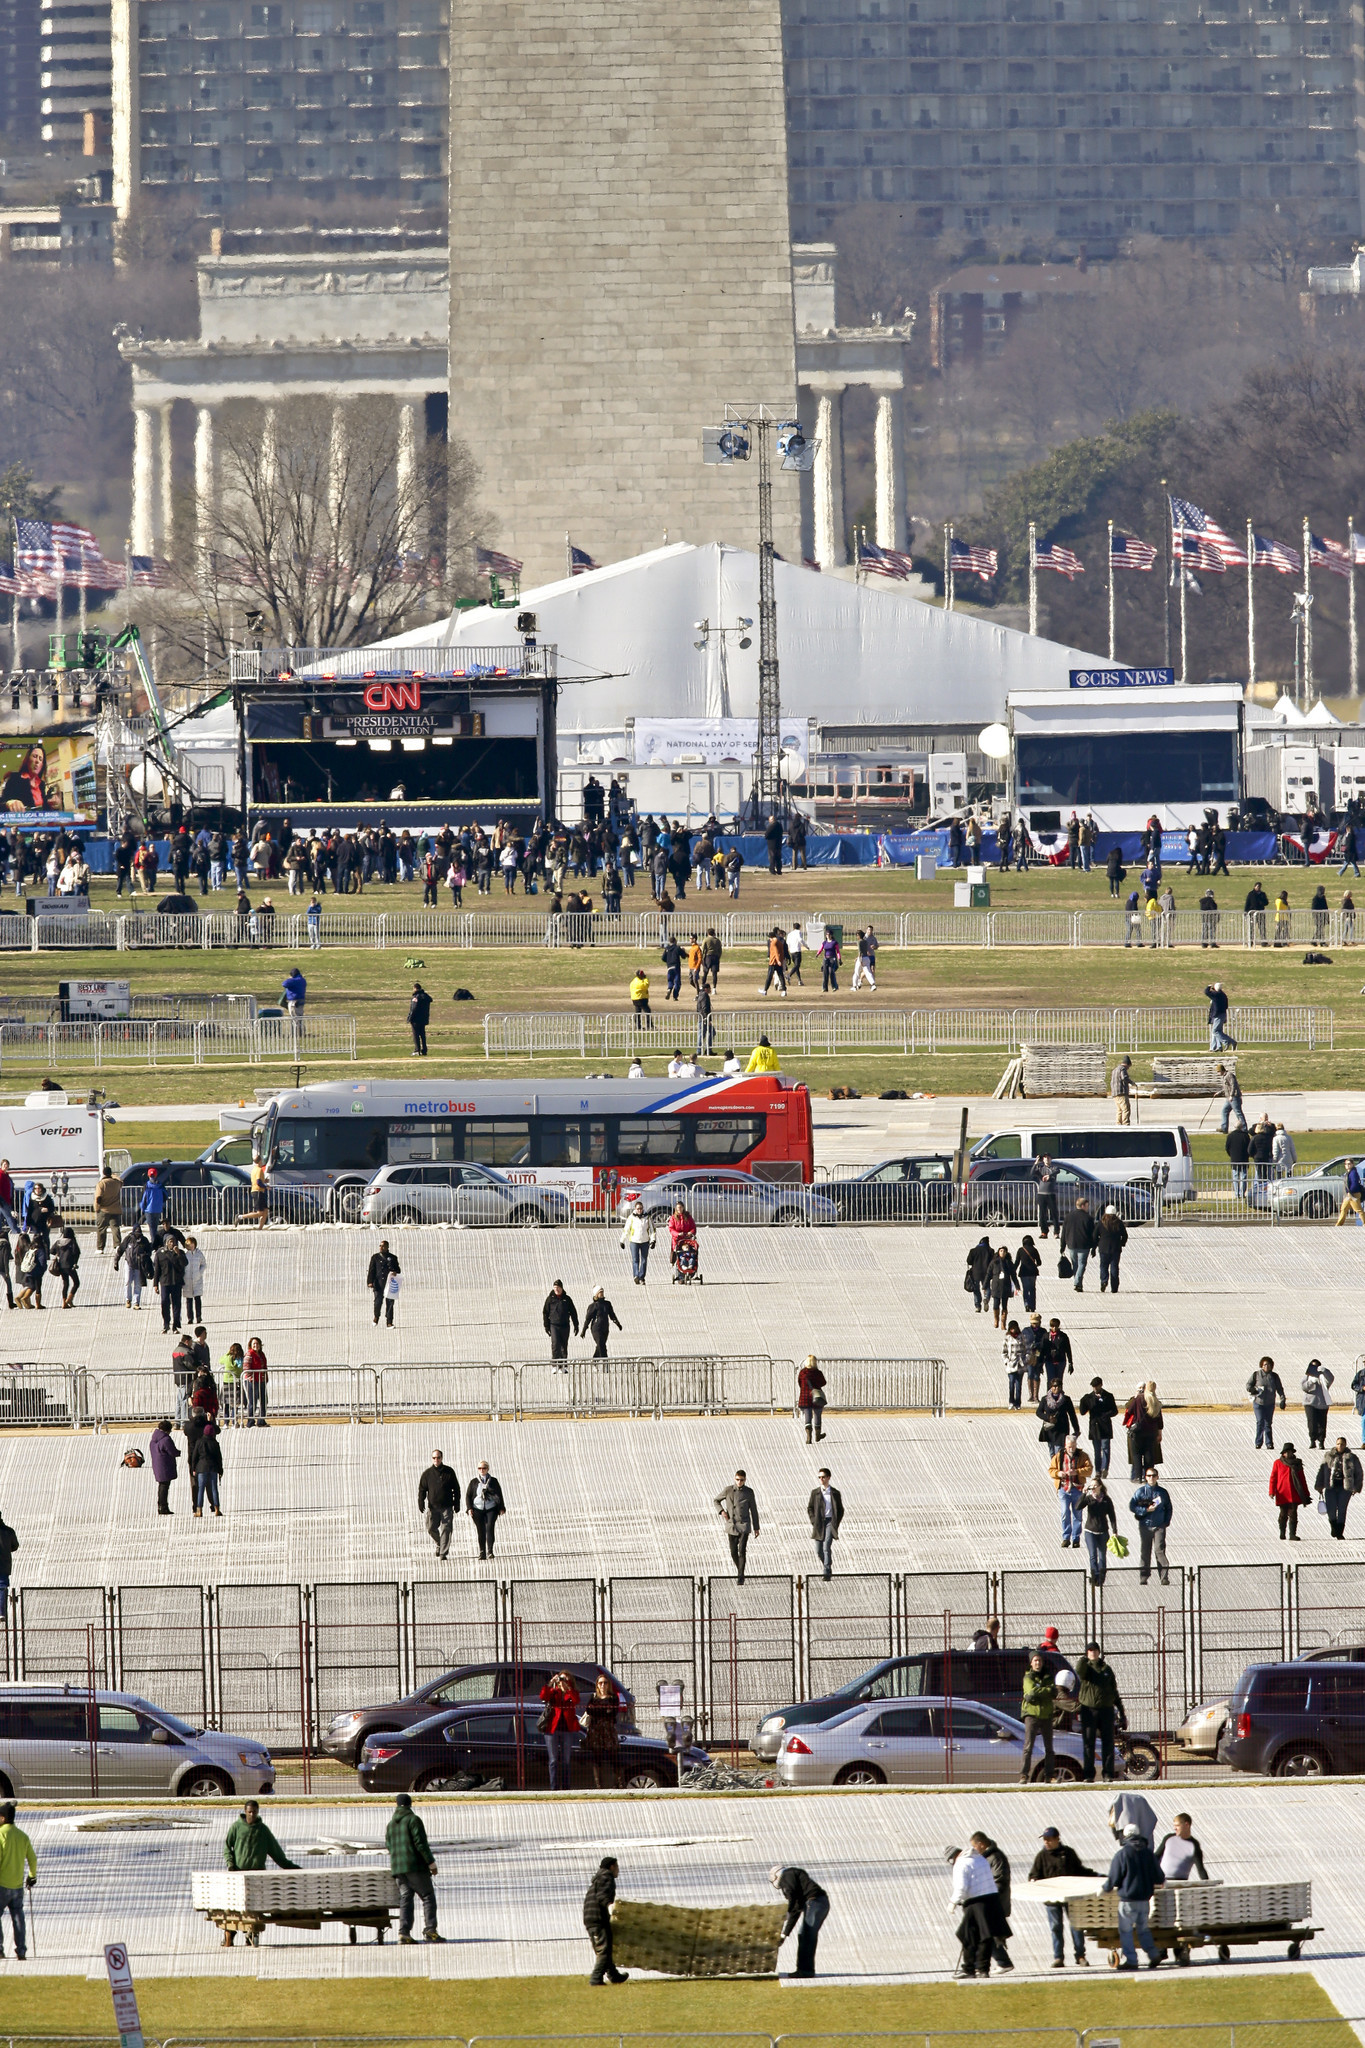 Crews lay down mats to protect the lawn on the National Mall before President Obama's second inauguration in 2013.